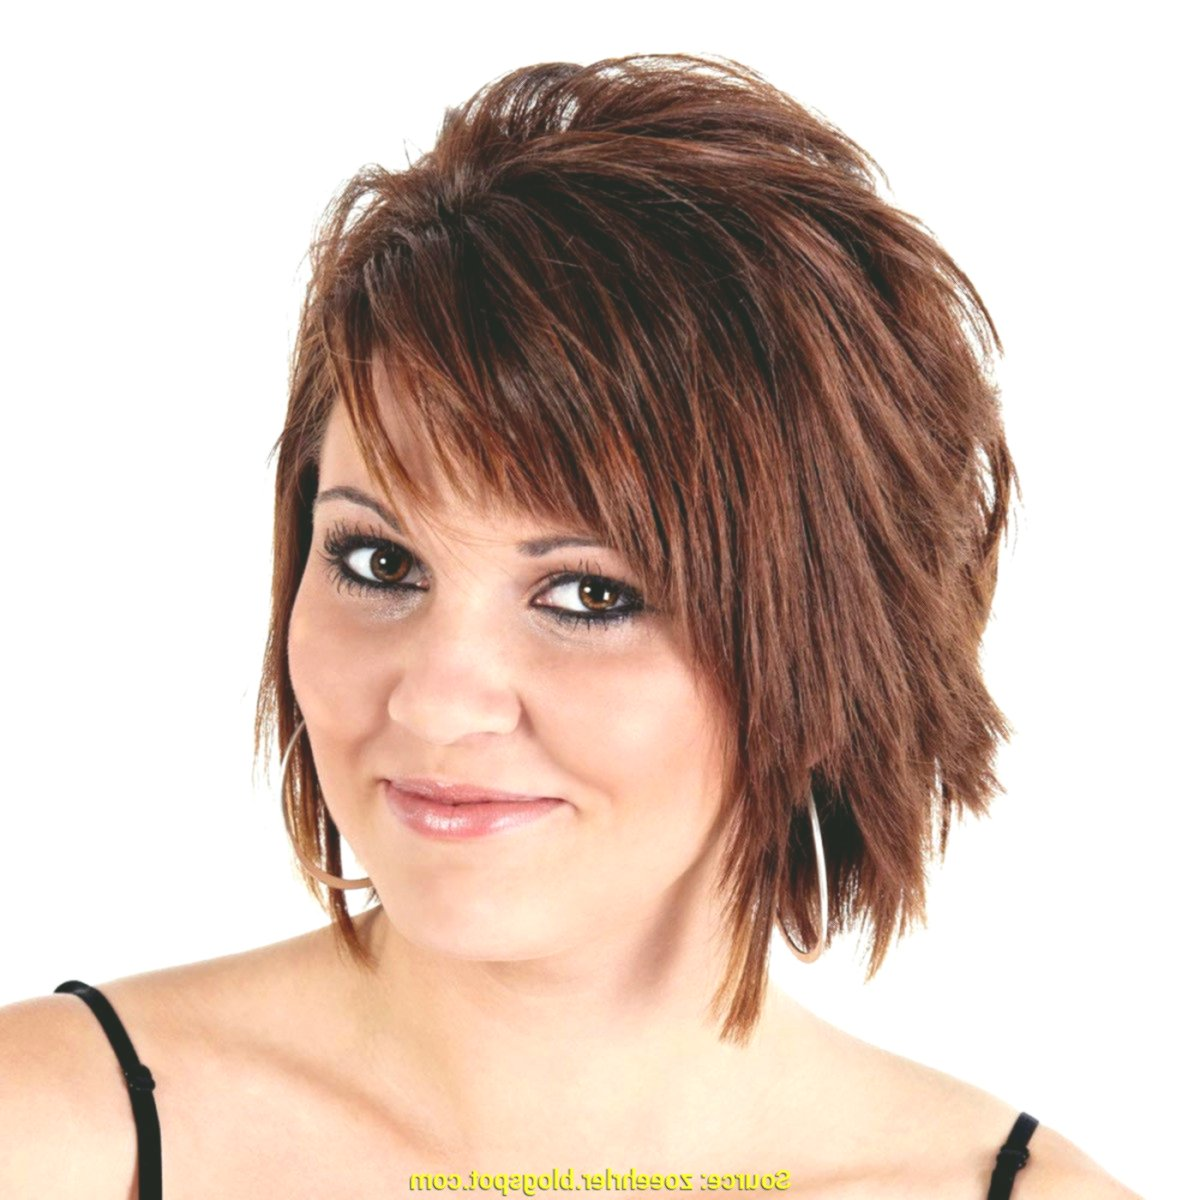 wonderfully stunning hairstyles pictures background-Beautiful hairstyles pictures decor